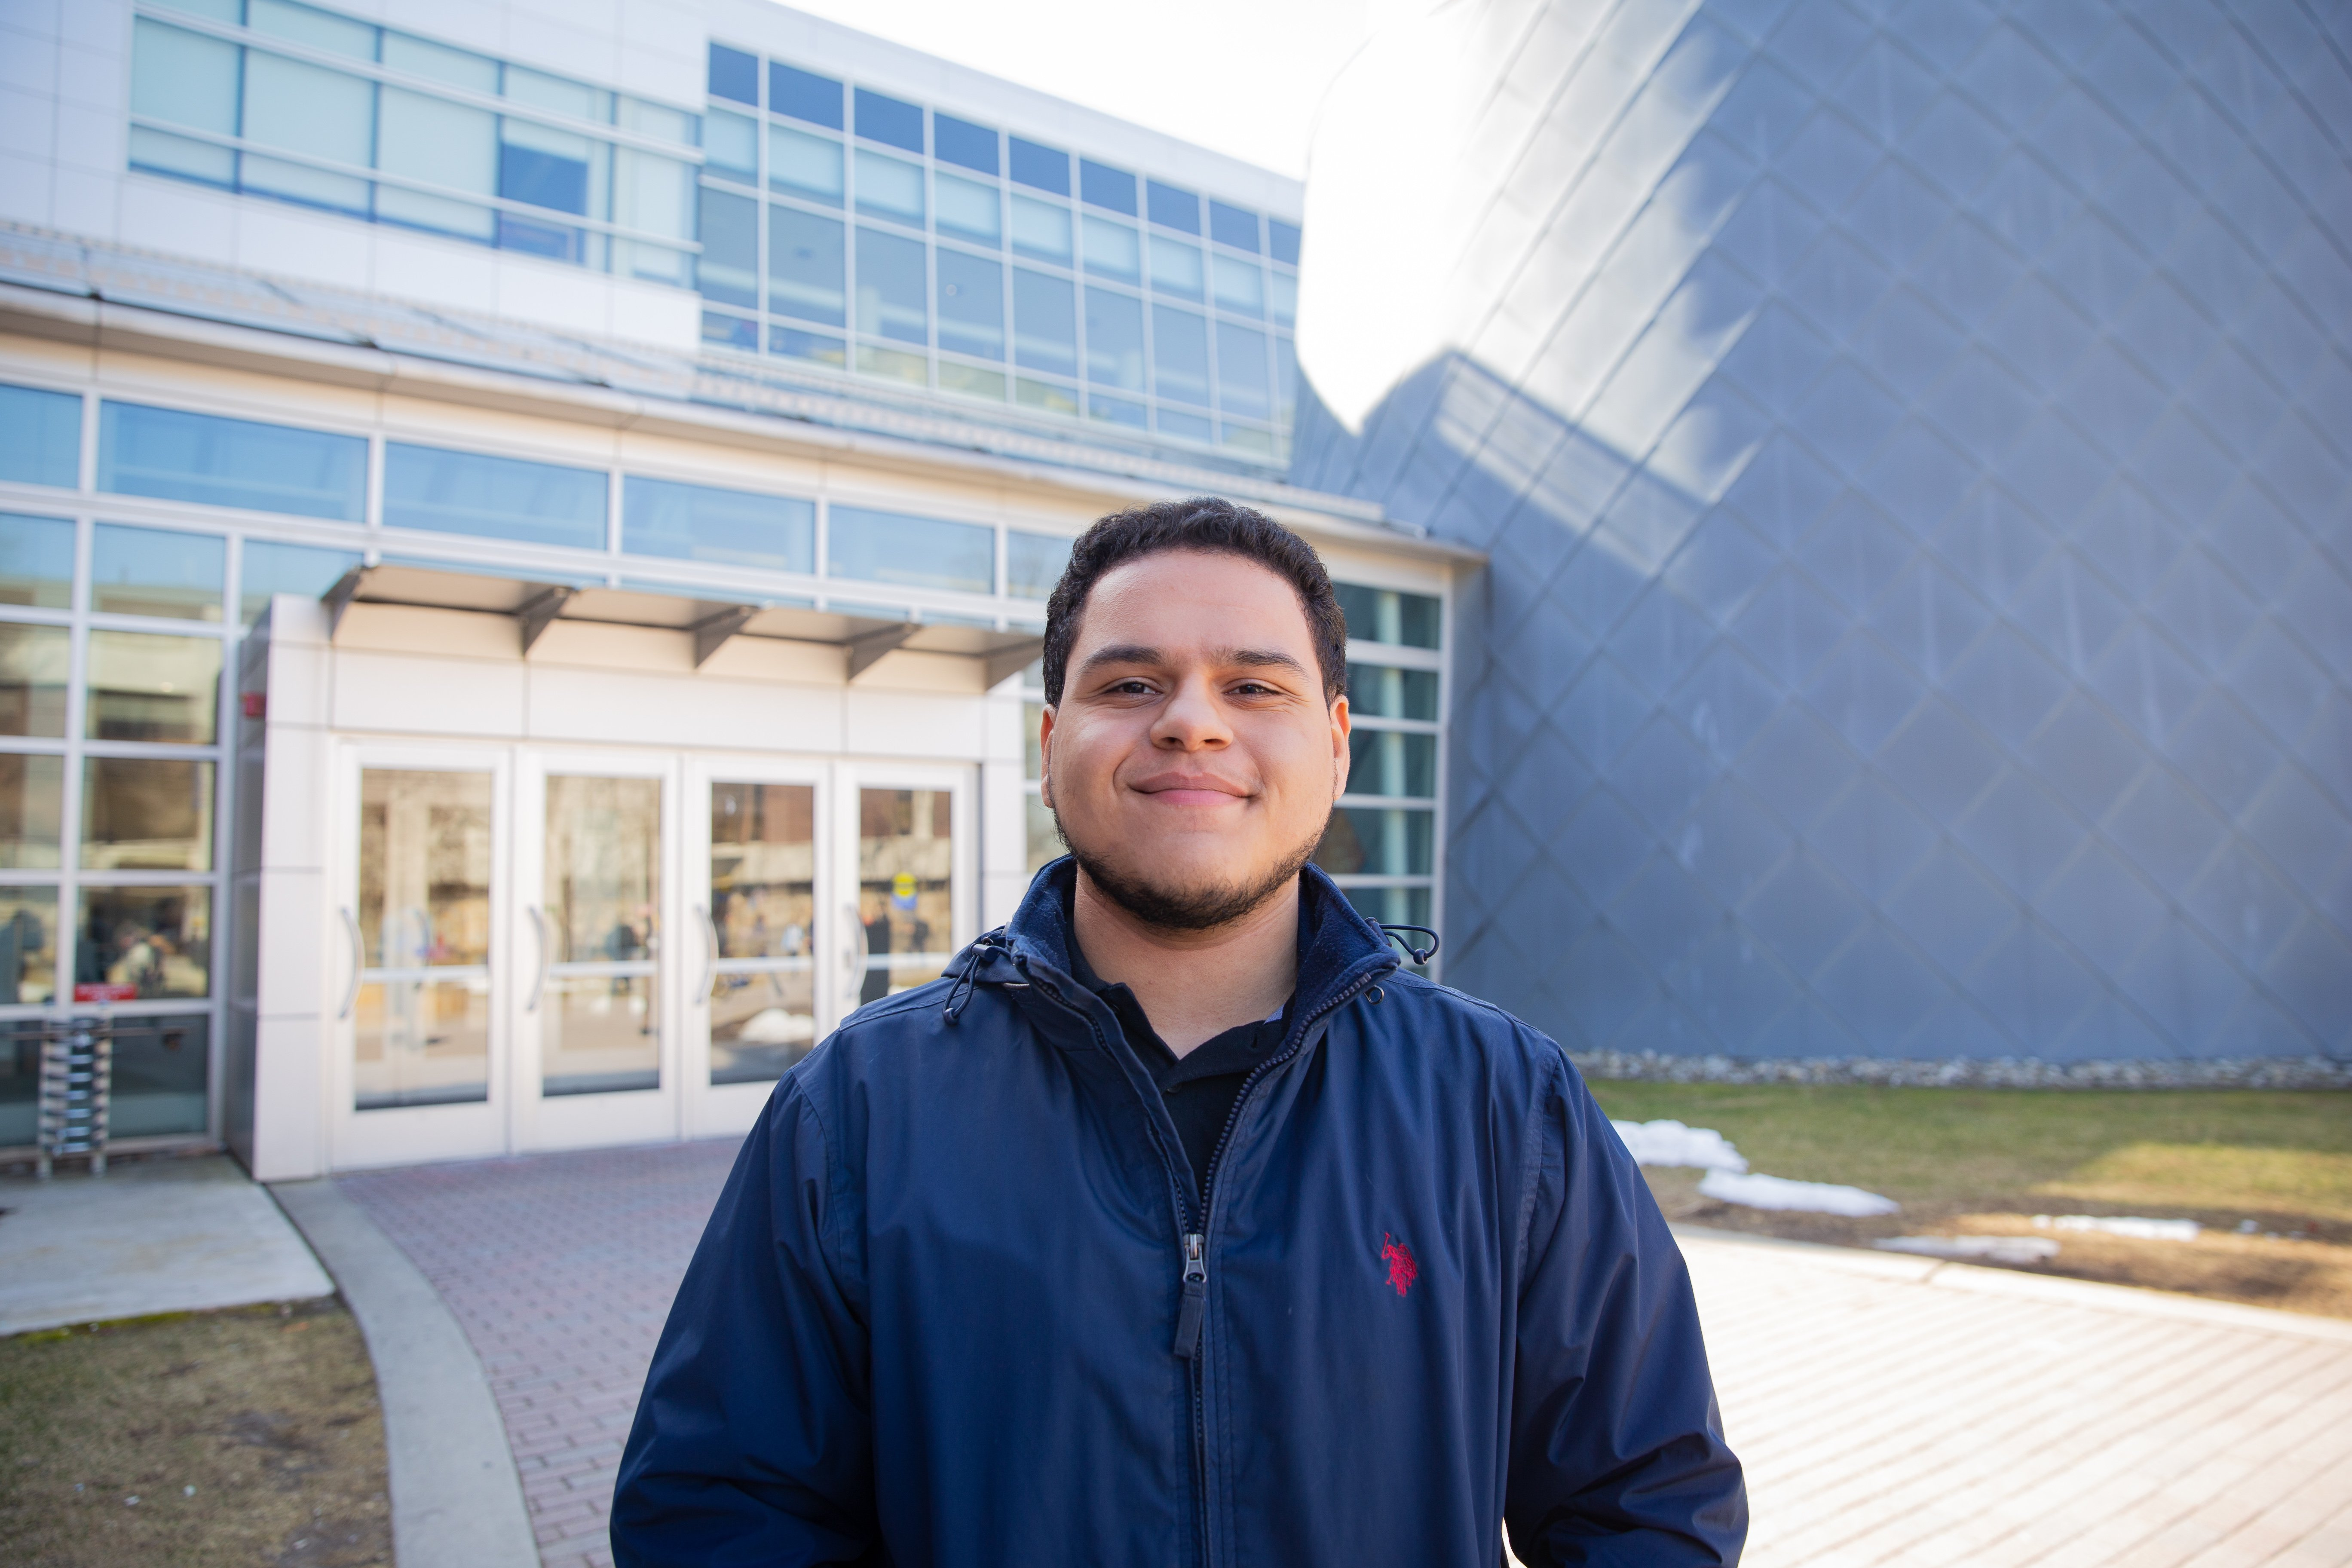 Luis Acevedo posing outside the science building at Rowan University.